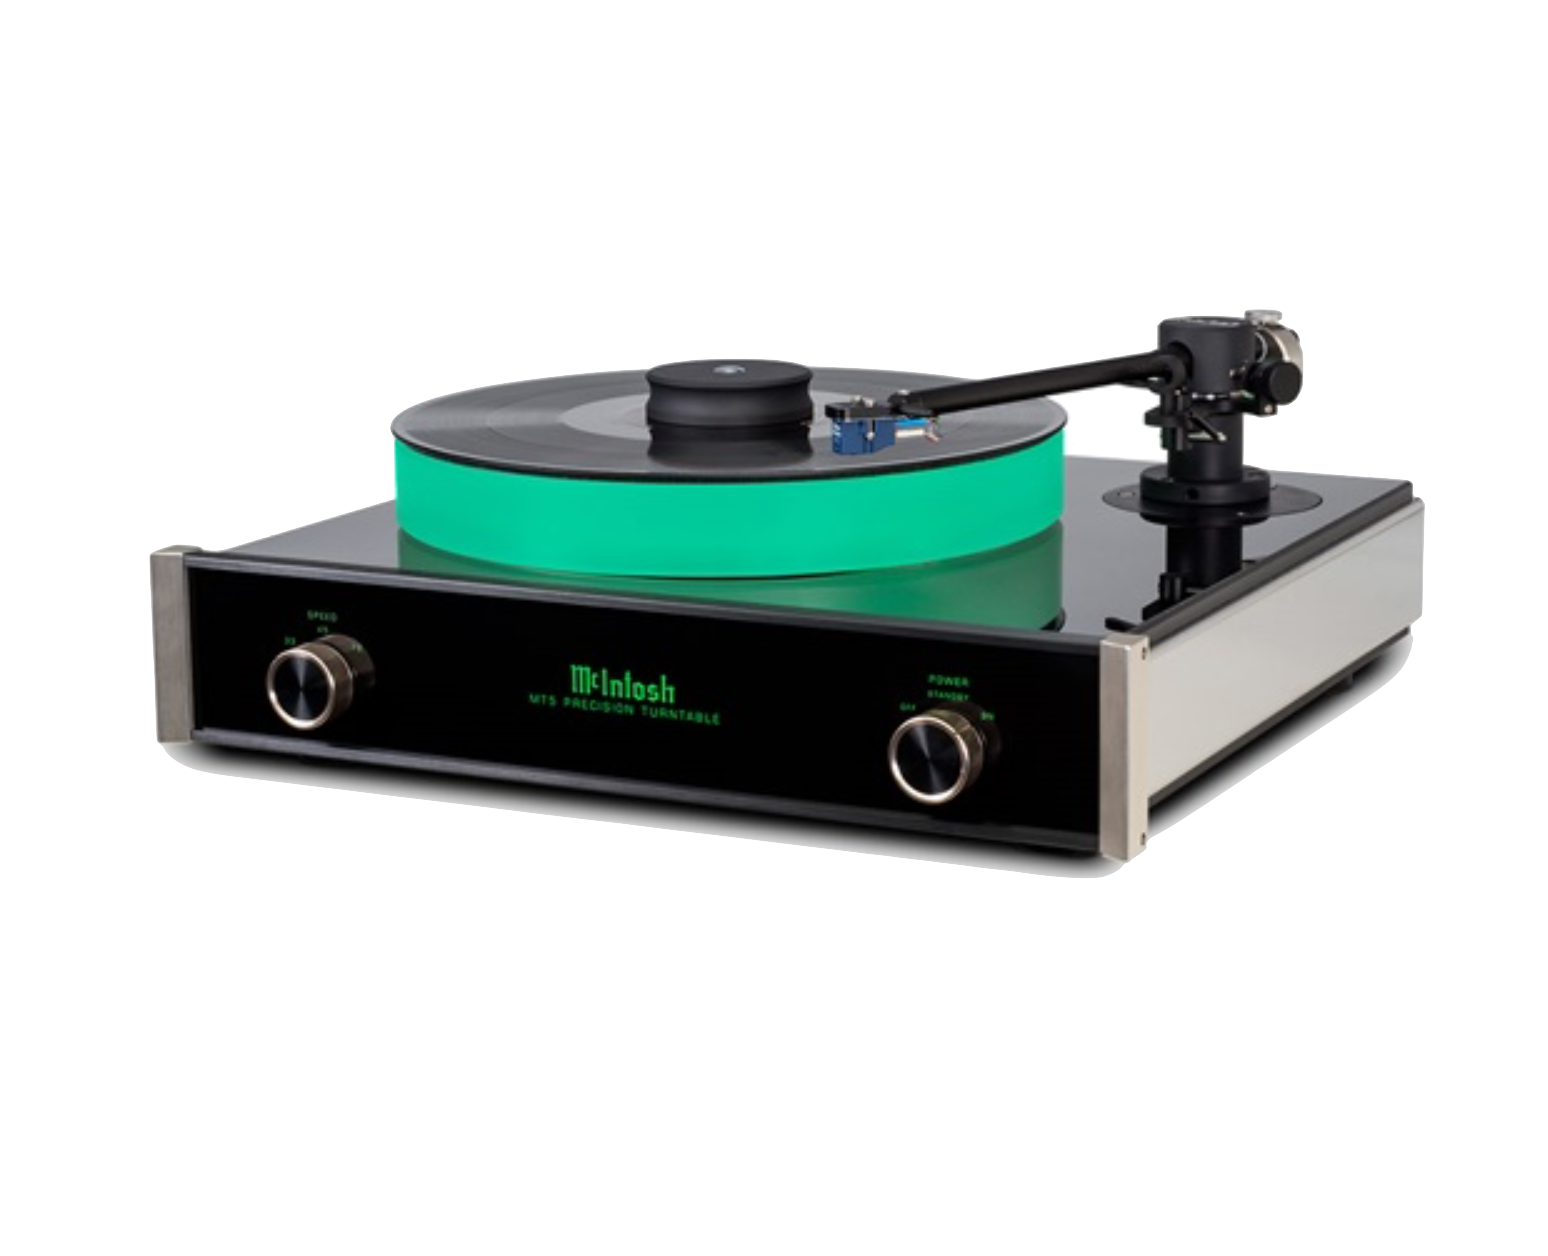 While maintaining complementary McIntosh styling, the MT5 takes full advantage of the chassis materials used to suppress noise, resonance and coloration so the only sound produced is that which is on your records. A clear, form-fitting dust cover is included to protect the MT5's moving parts, along with your valued records.